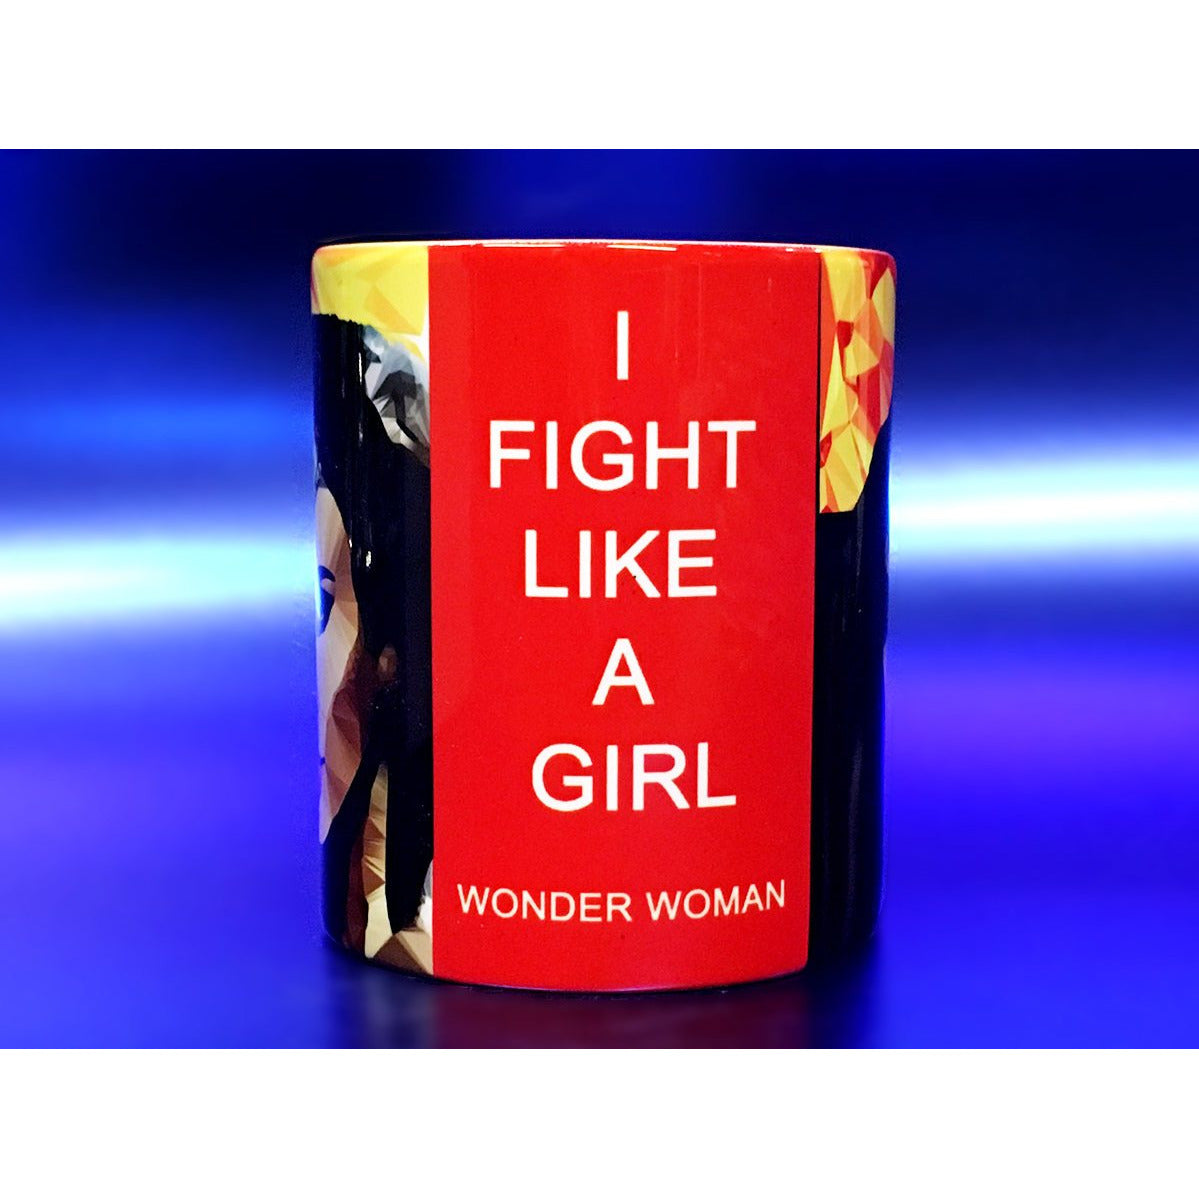 Wonder Woman #2 Mug by Baiba Auria - Egoiste Gallery